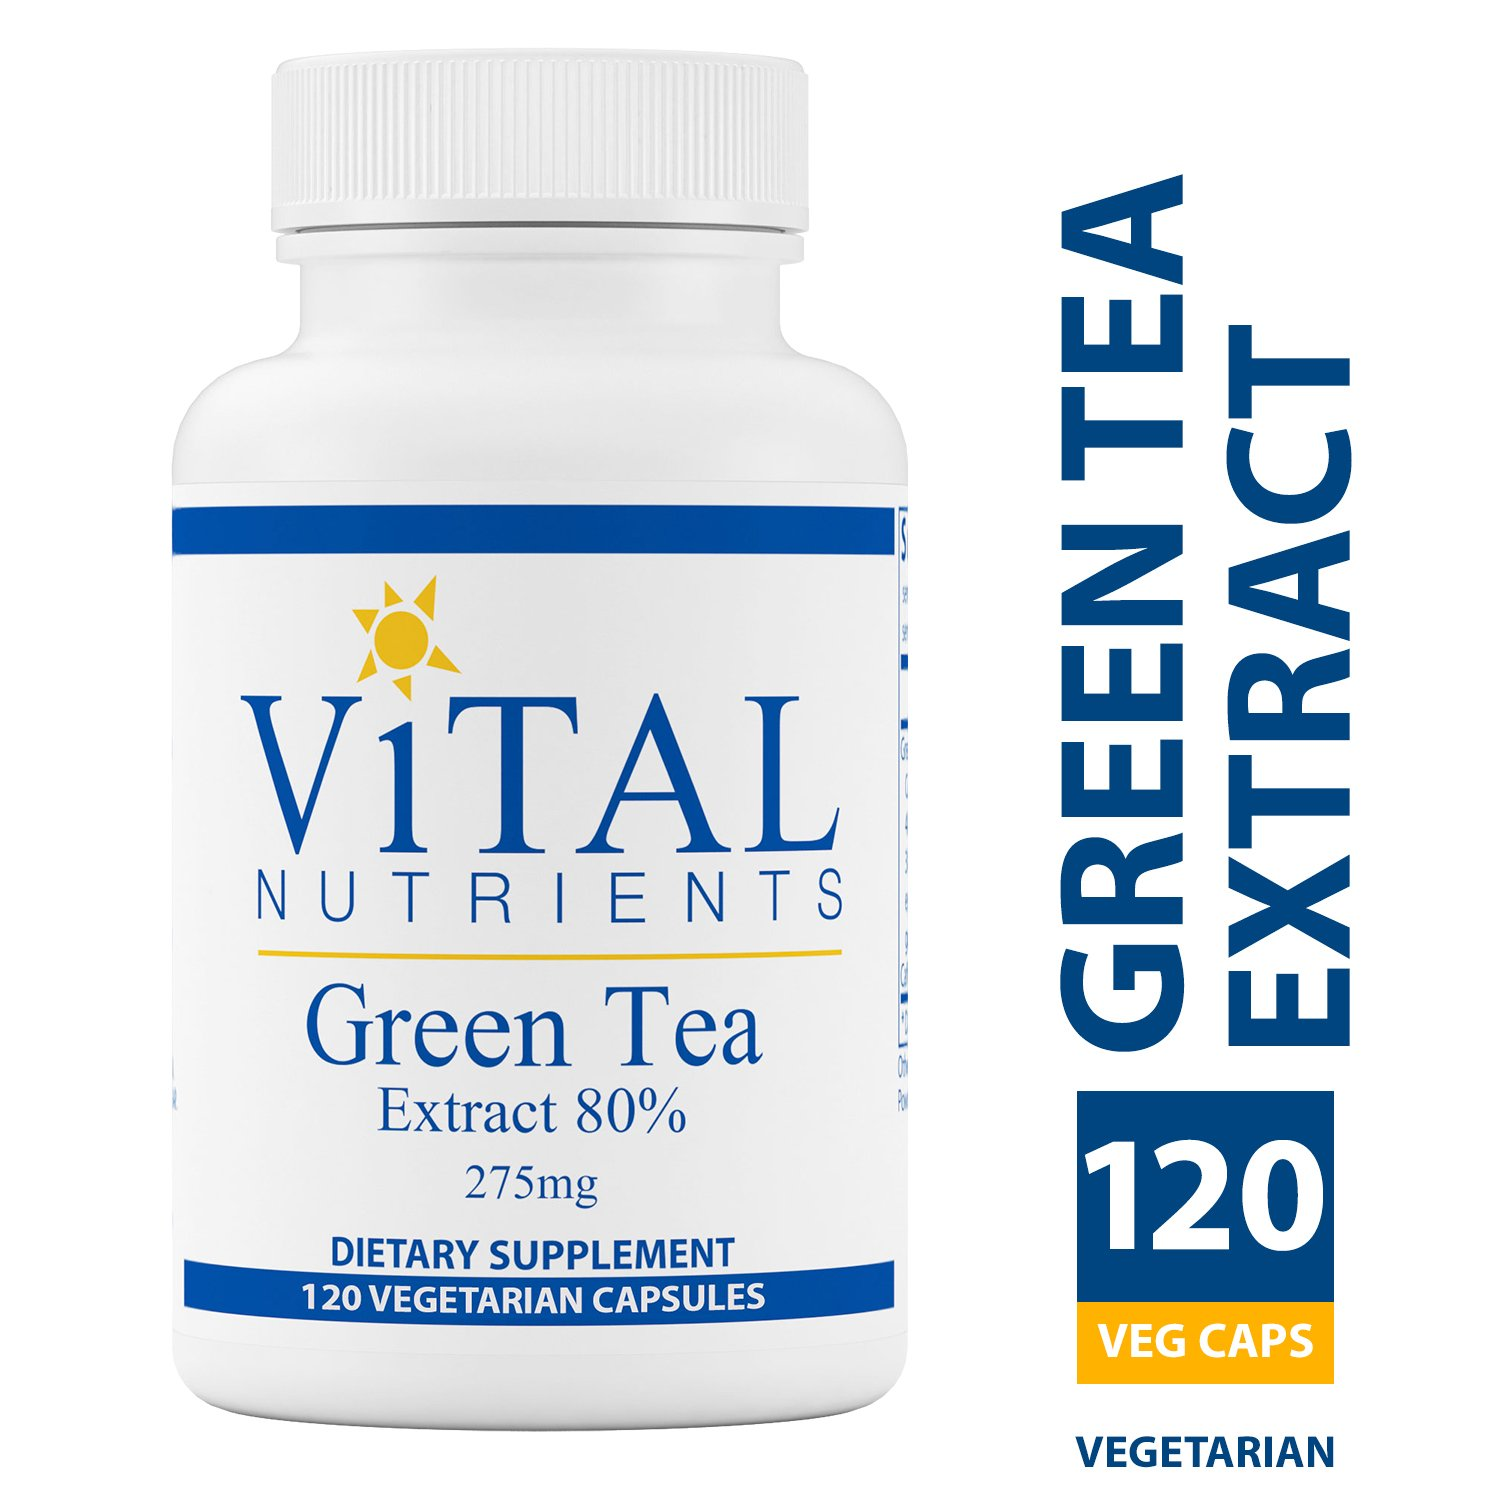 Vital Nutrients - Green Tea Extract 275 mg - Potent Antioxidant & Immune Enhancer - 120 Capsules